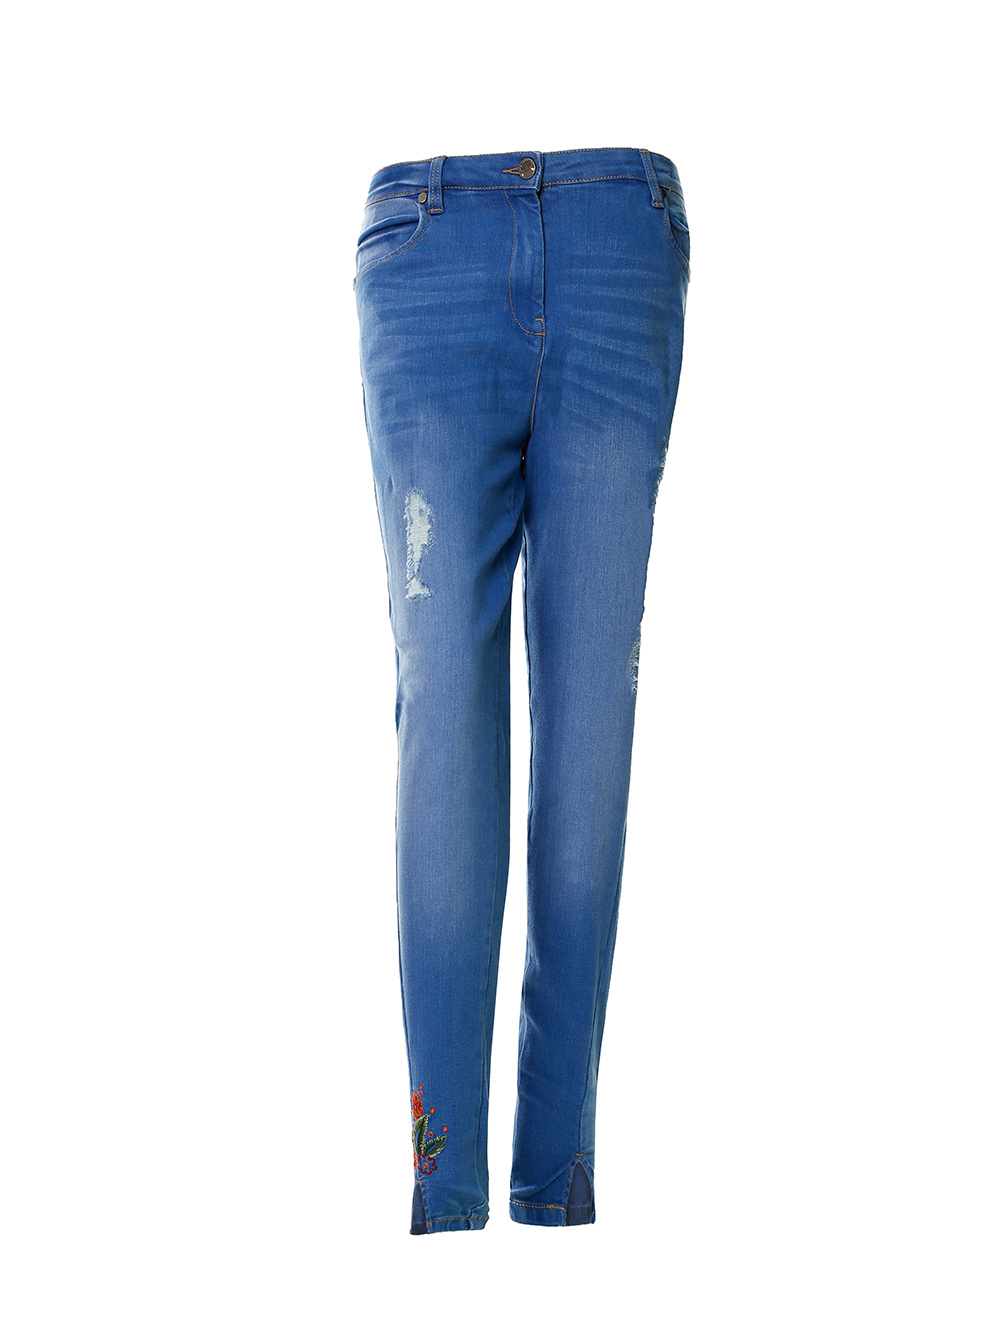 women's denim bottom